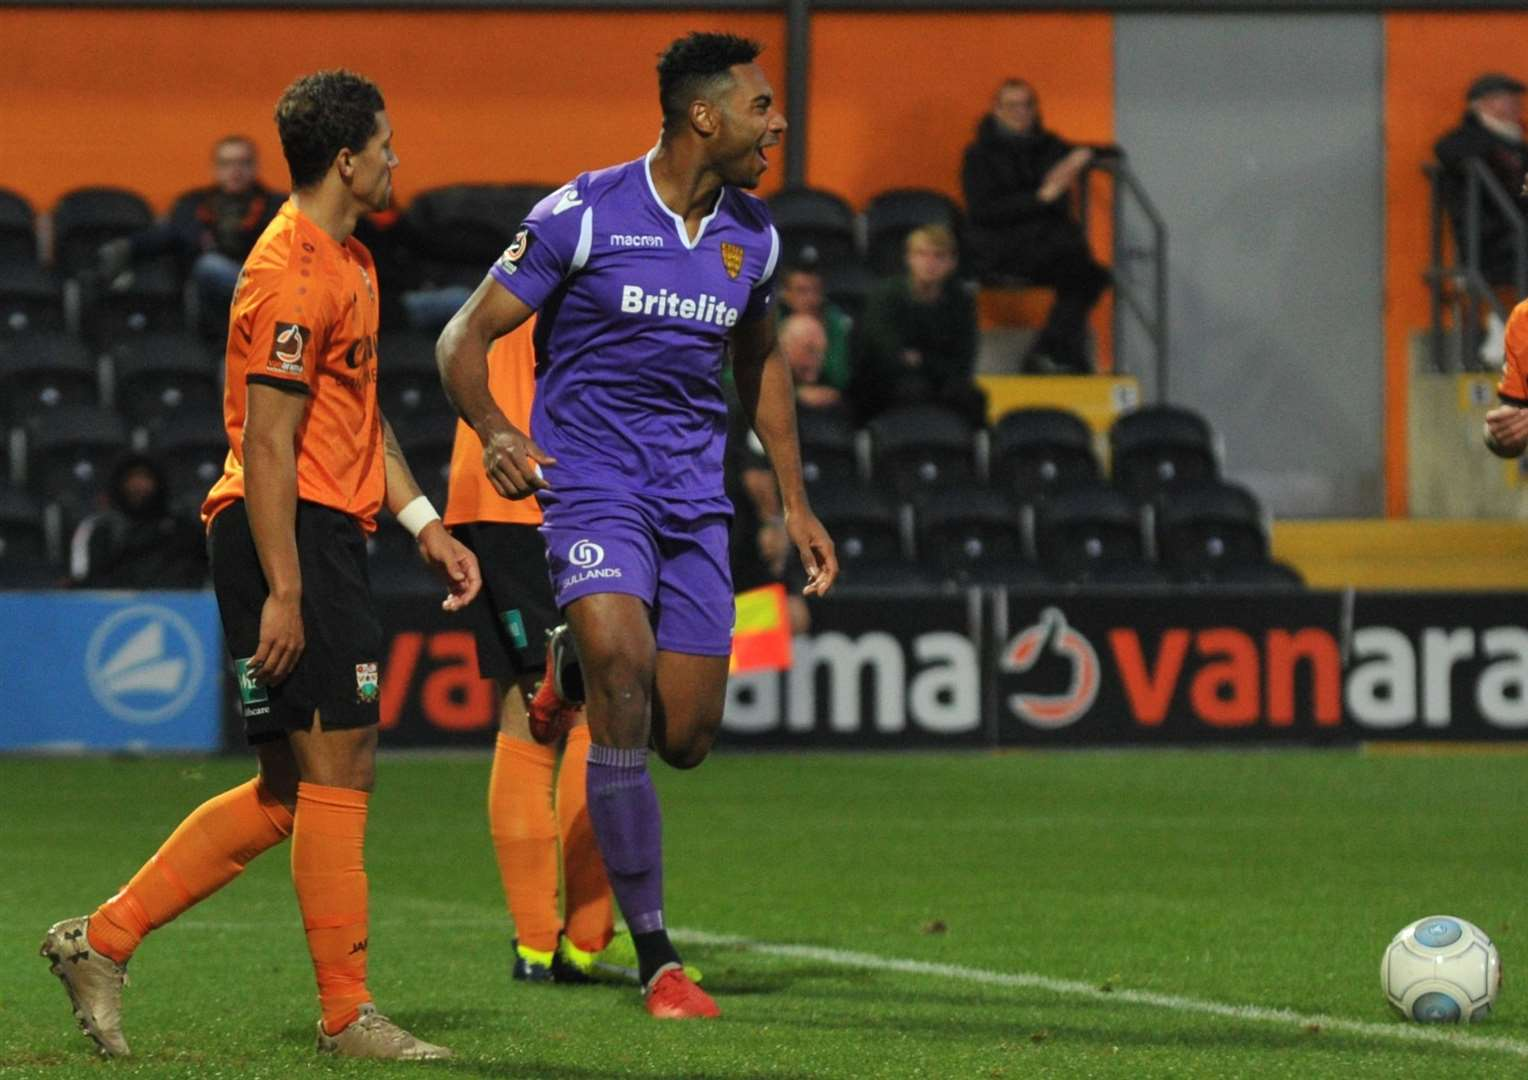 Gold Omotayo celebrates his goal at Barnet for Maidstone United. Picture: Steve Terrell (48887717)